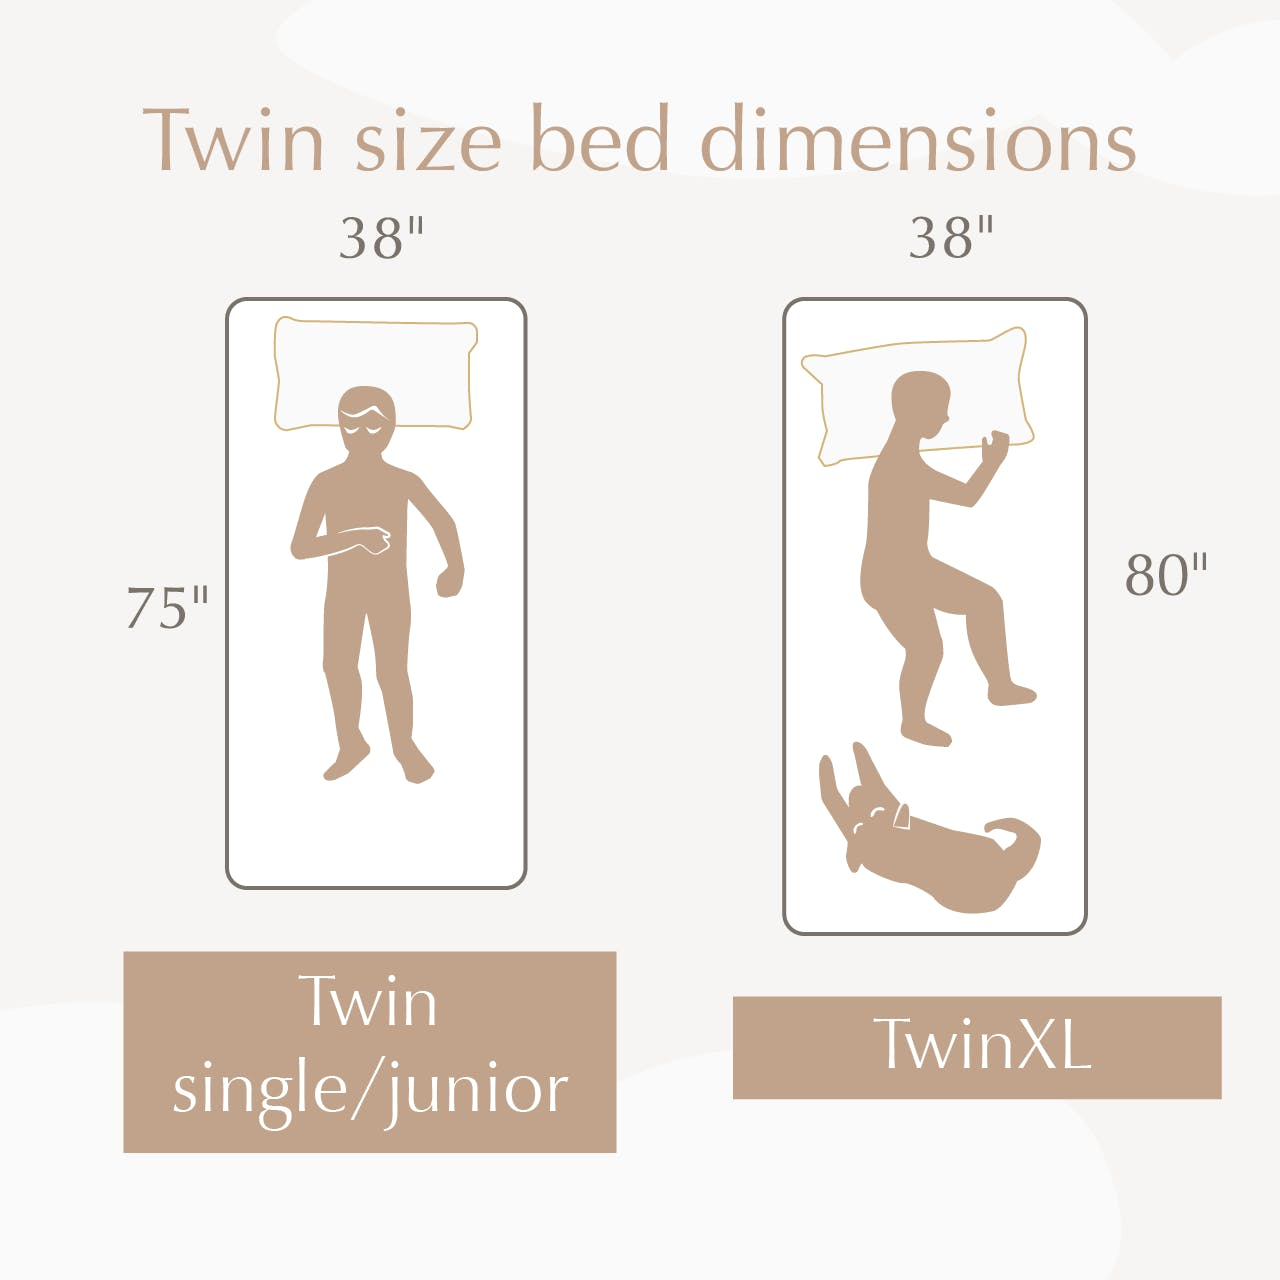 illustration showing the differences between twin vs twin xl bed sizes